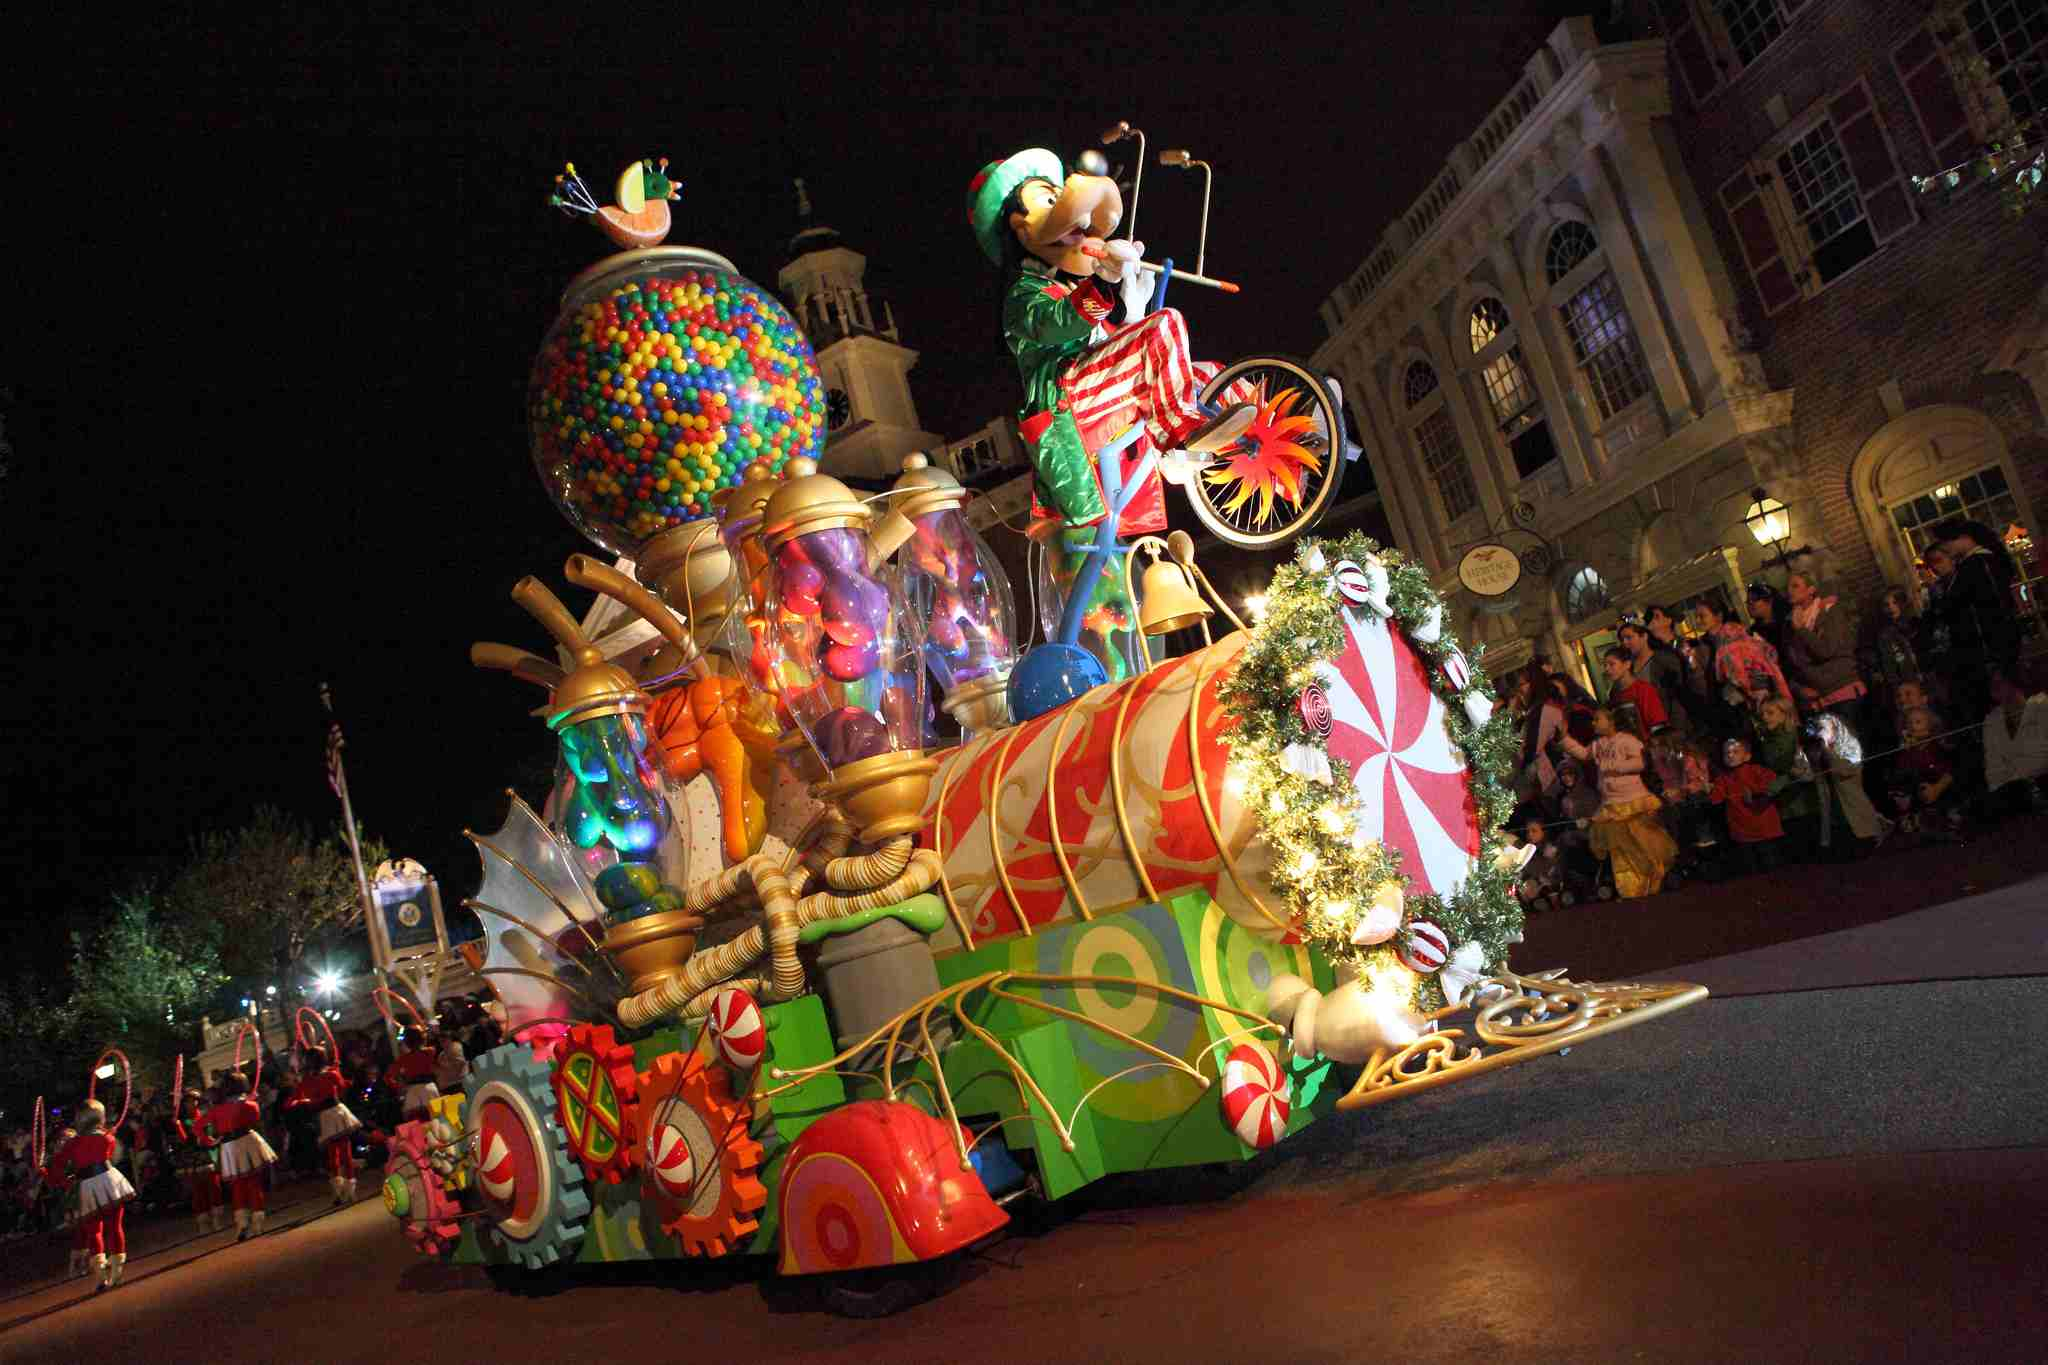 """Goofy in """"Mickey's Once Upon A Christmas"""" parade during Mickey's Very Merry Christmas Party 2012 in Magic Kingdom."""